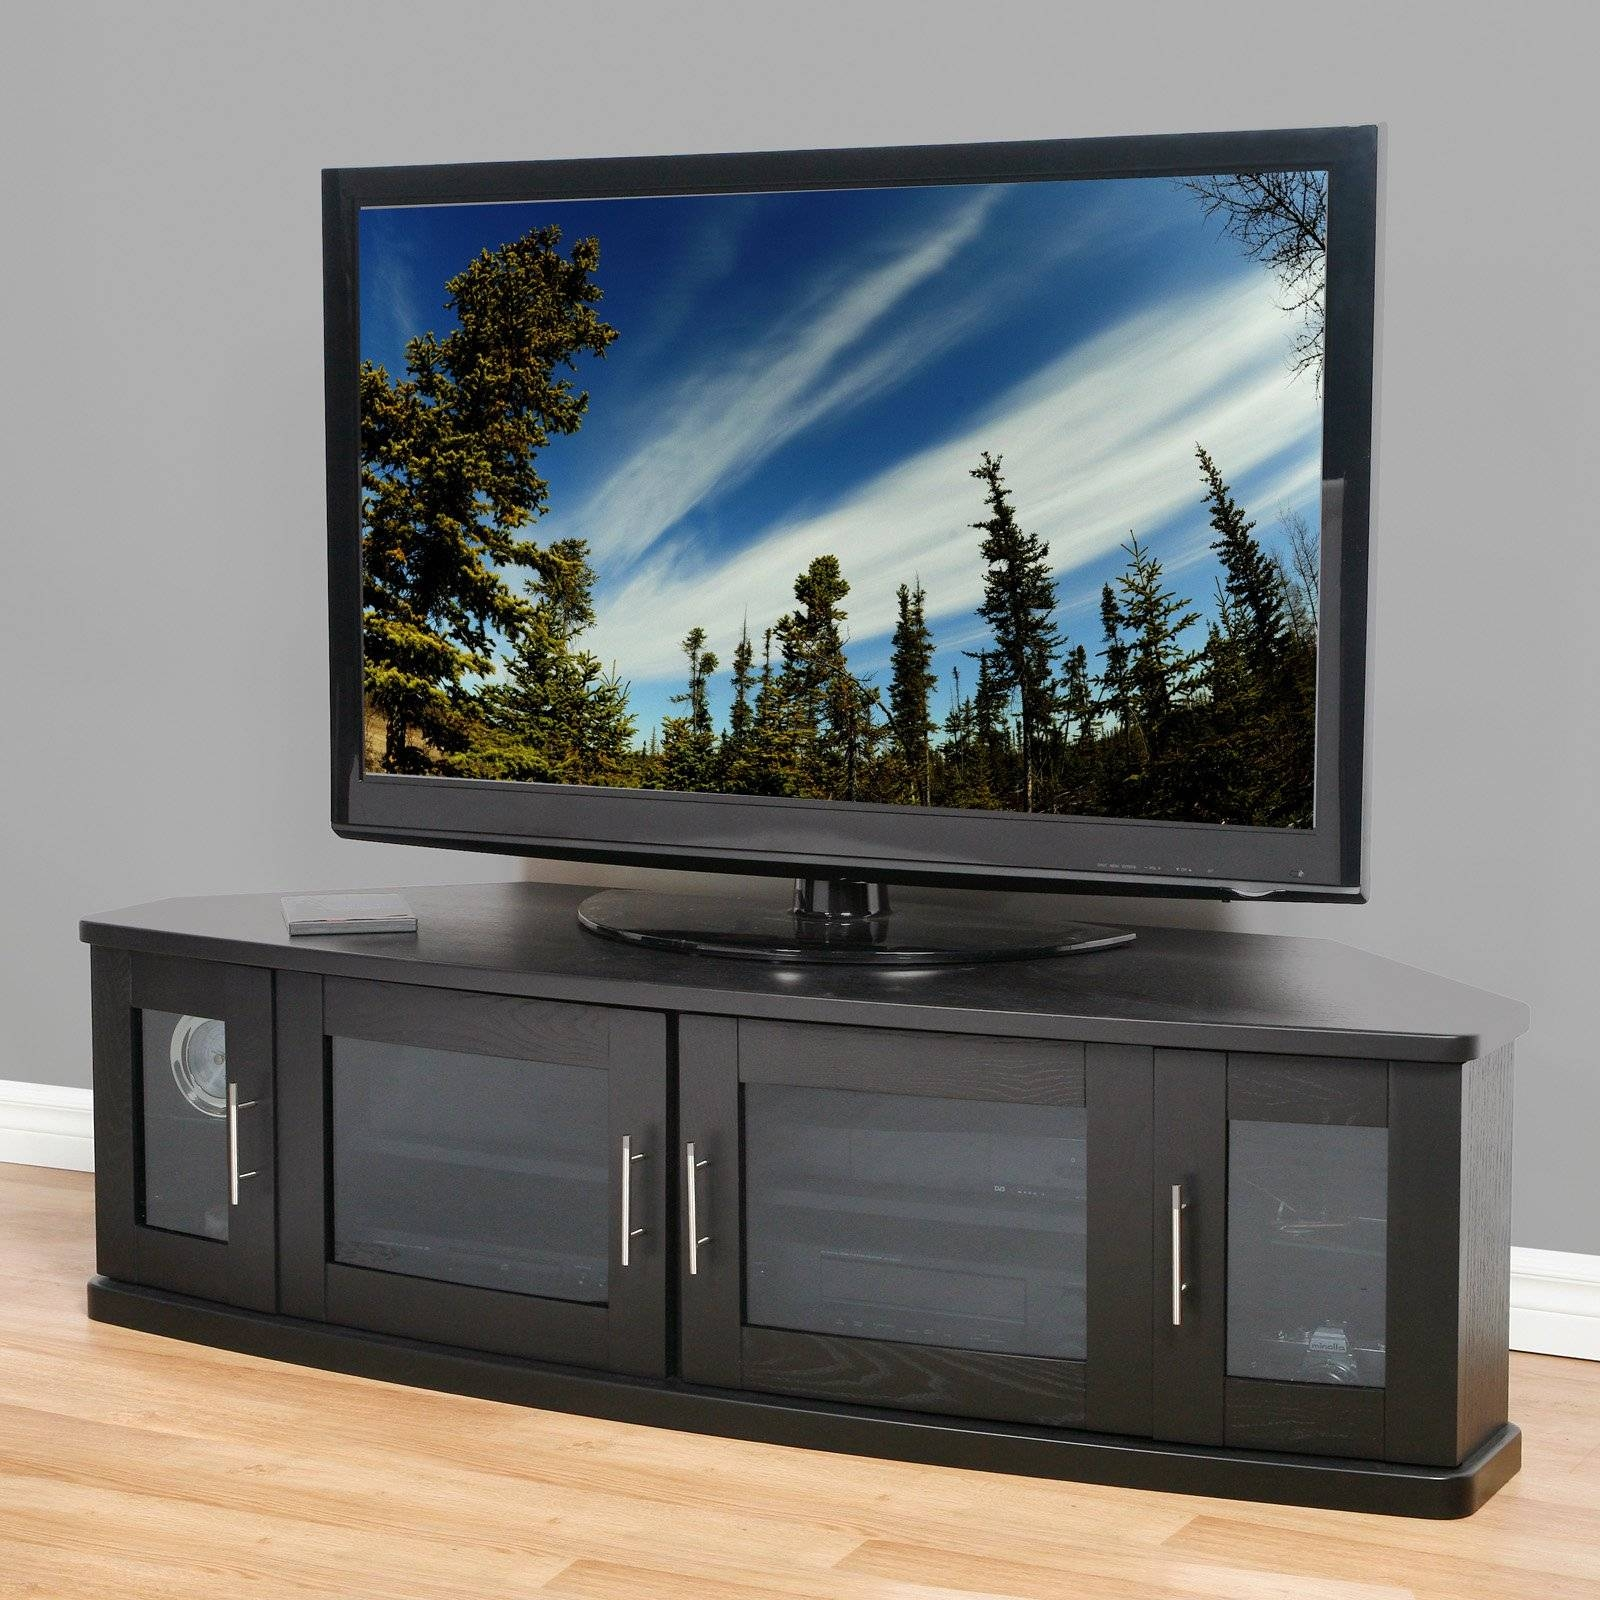 Modern Black Wooden Tv Stand With Frosted Glass Doors Of Dazzling for Wooden Tv Cabinets With Glass Doors (Image 11 of 15)